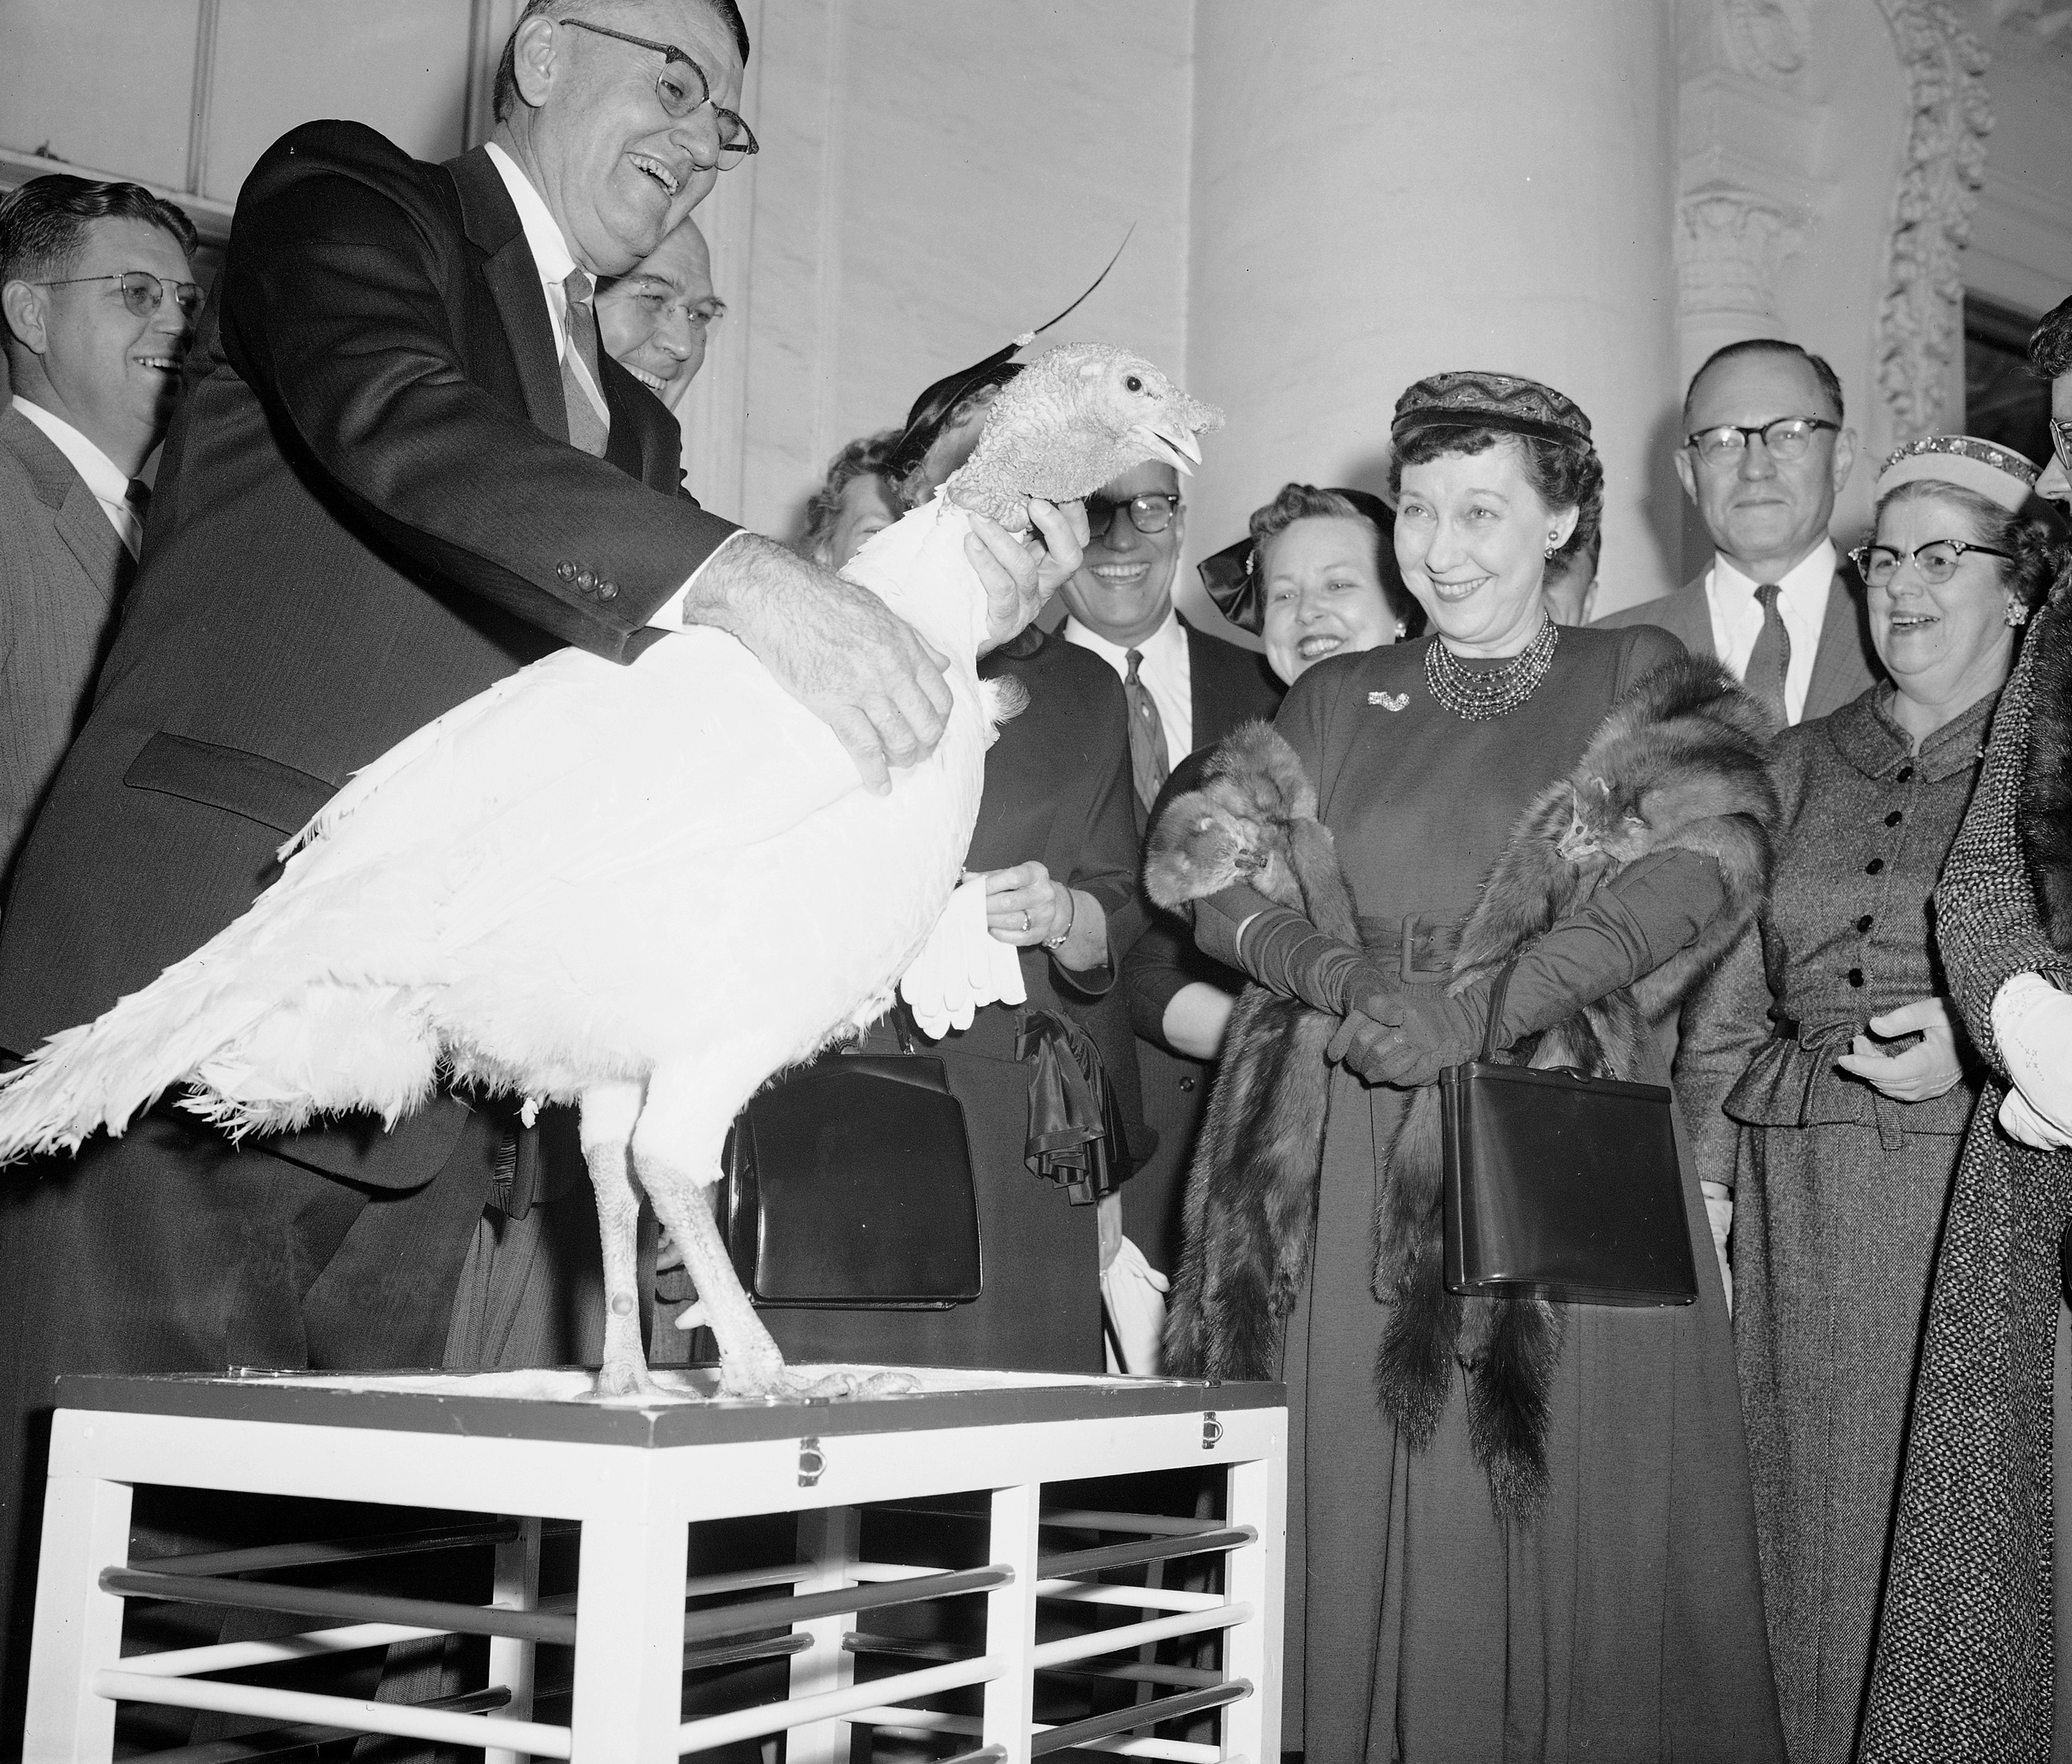 First lady Mamie Eisenhower is amused by the gobbling of a 40-pound tom turkey presented to her at the White House, on Nov. 14, 1957.